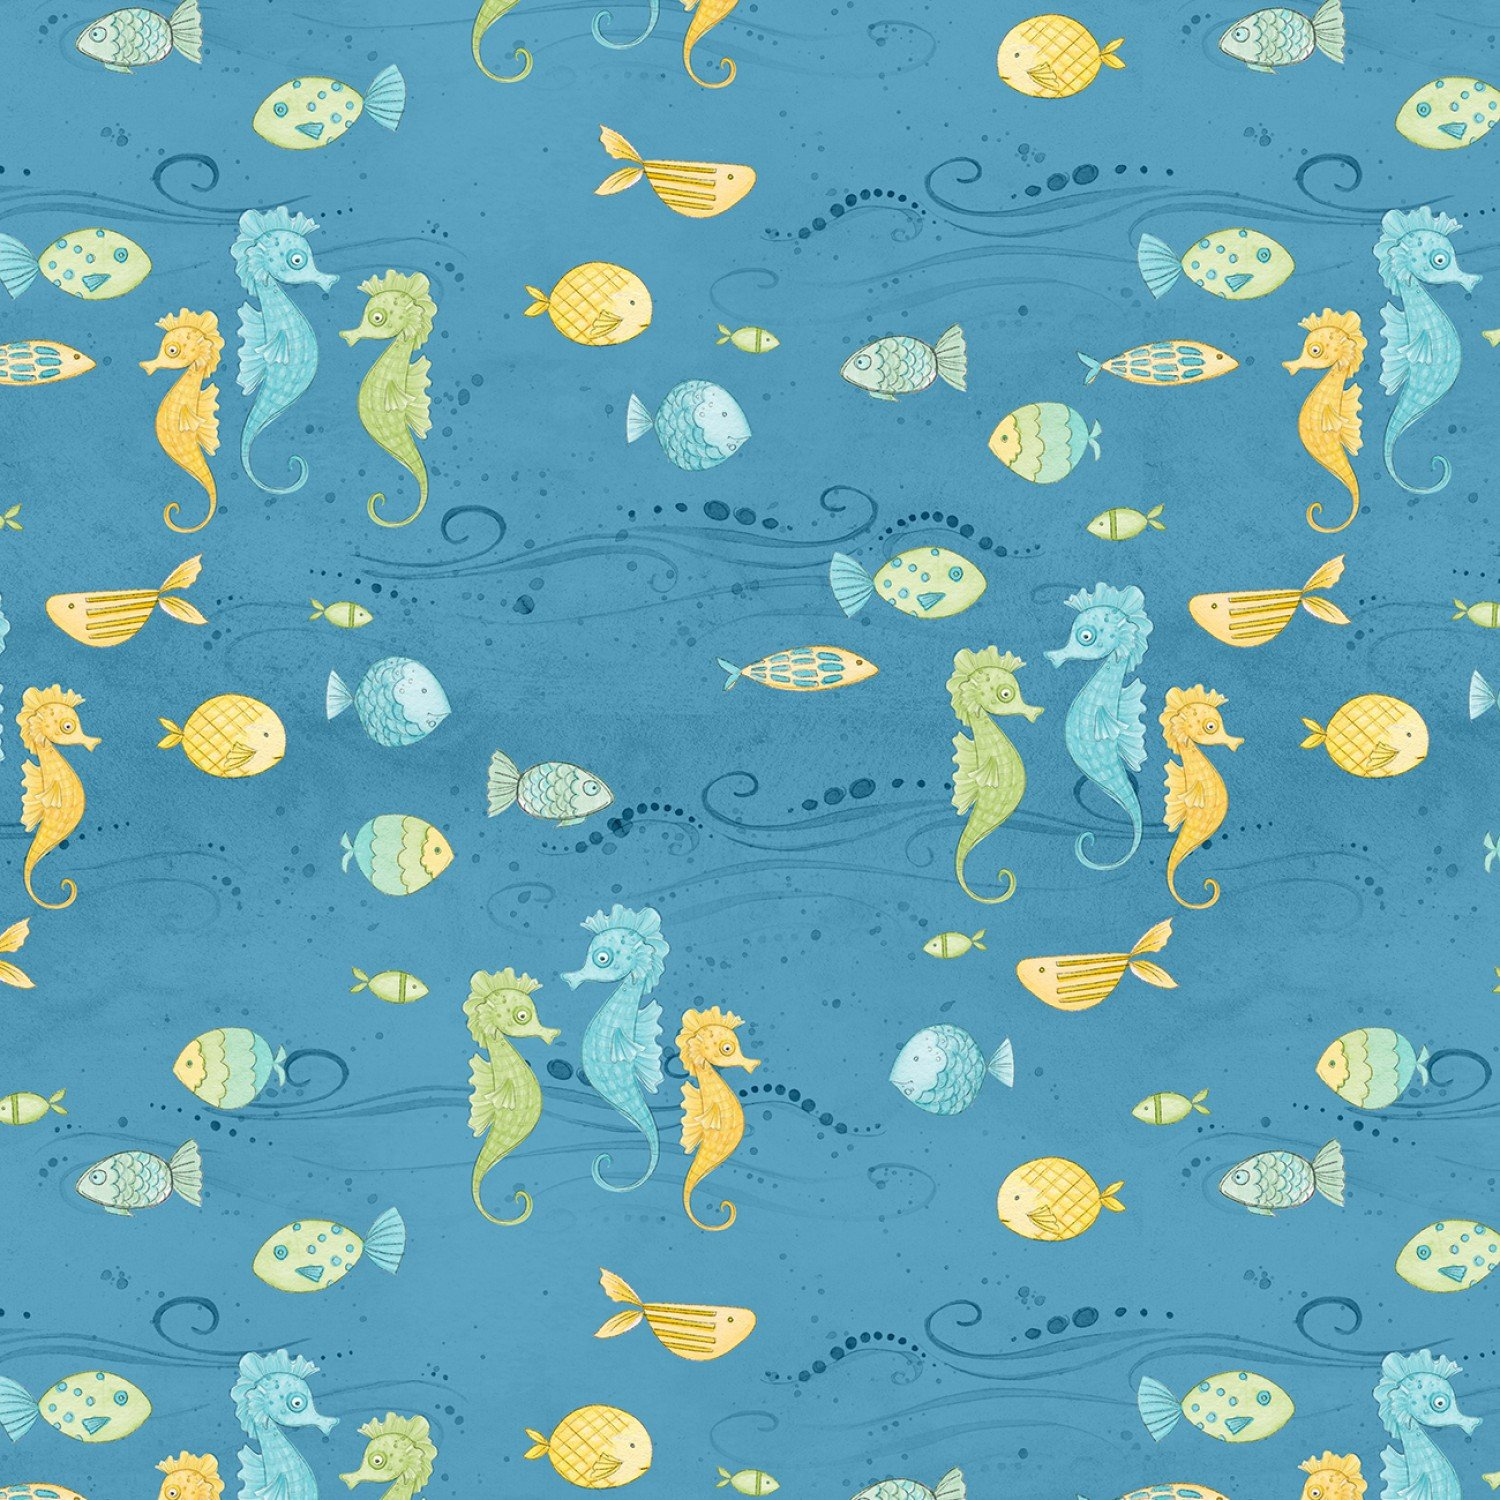 Water Wishes 27567-454 Blue/Green Fish by Danielle Leone for Wilmington Prints